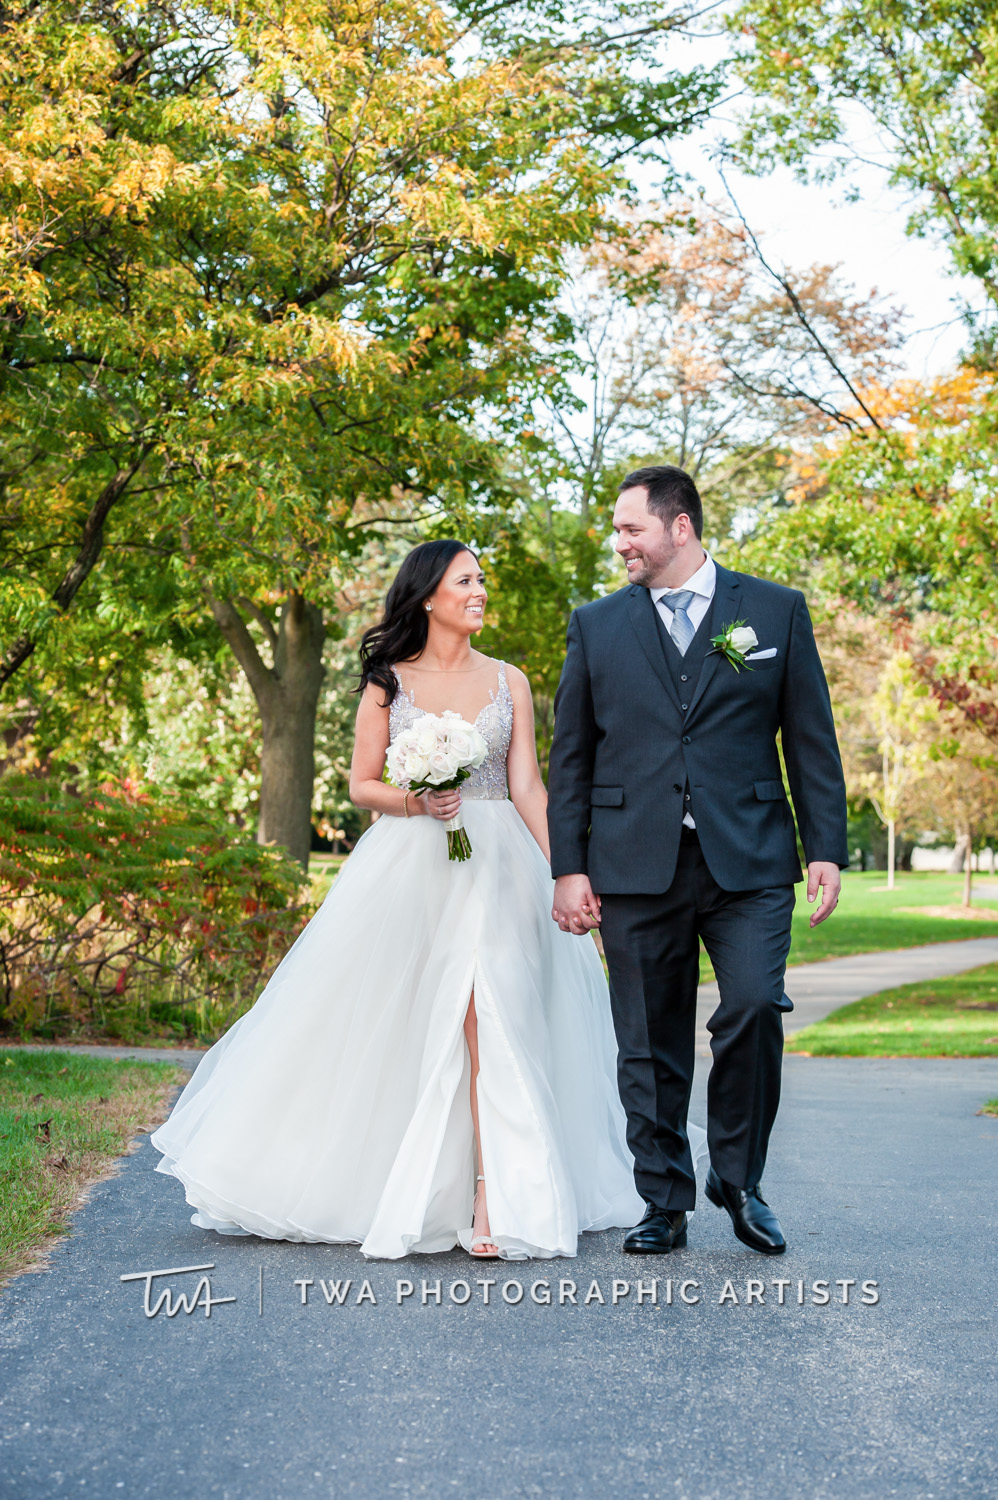 Stephanie & Rick's Chicagoland Wedding